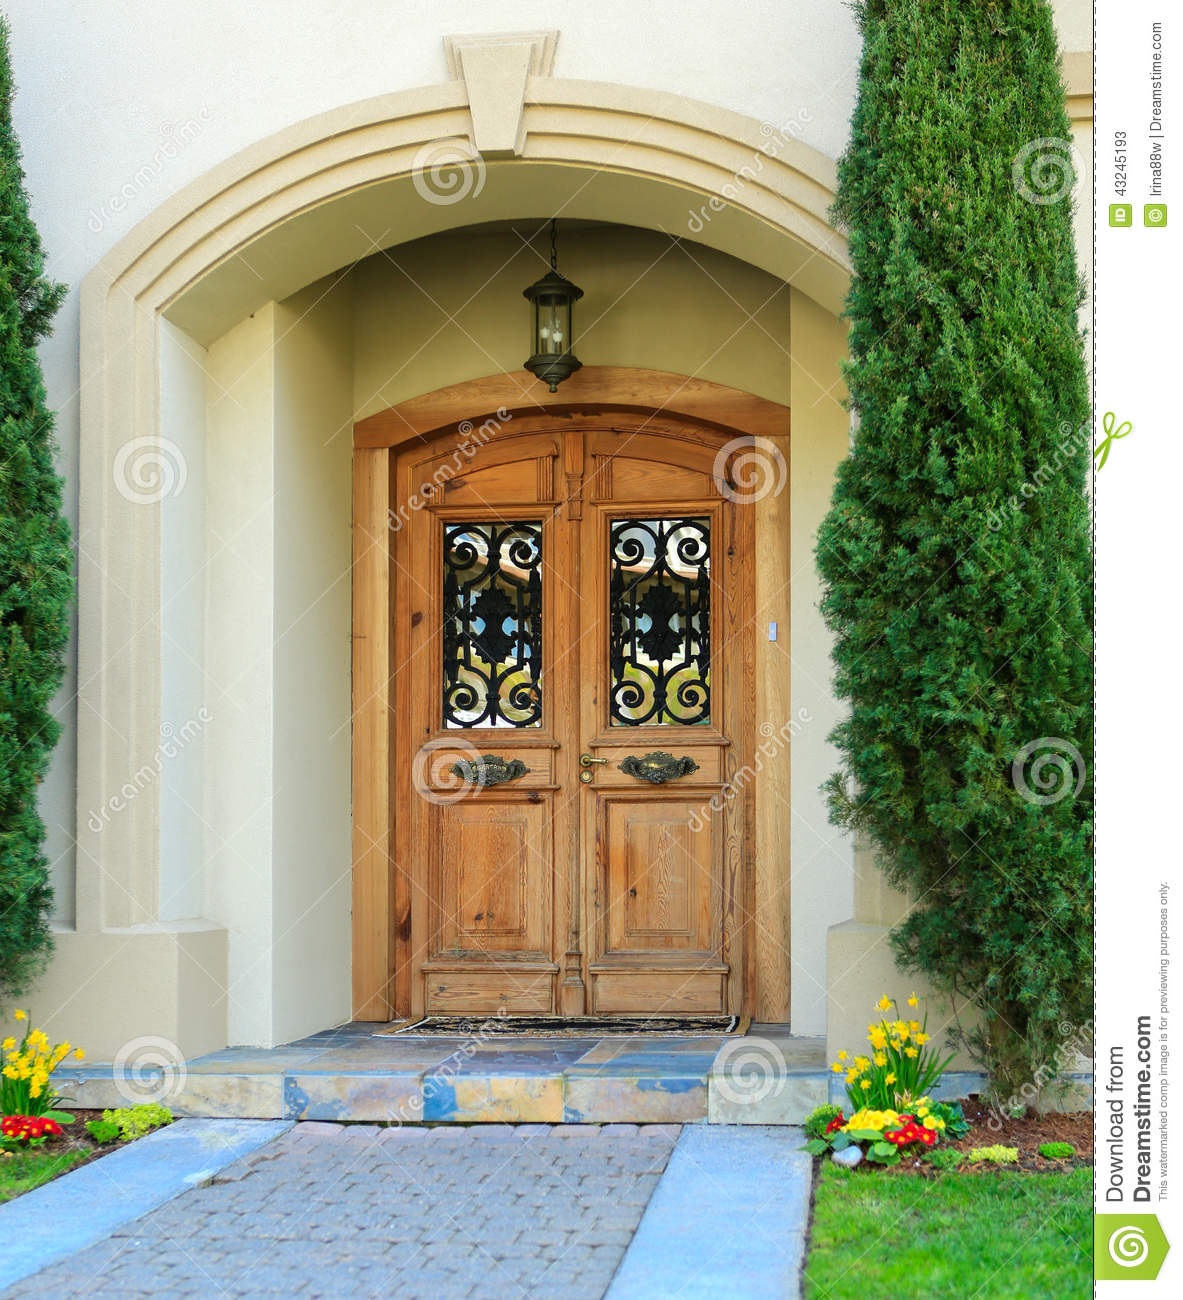 Luxury Home Entrance Luxury House Entrance Porch Stock Photo Image 43245193